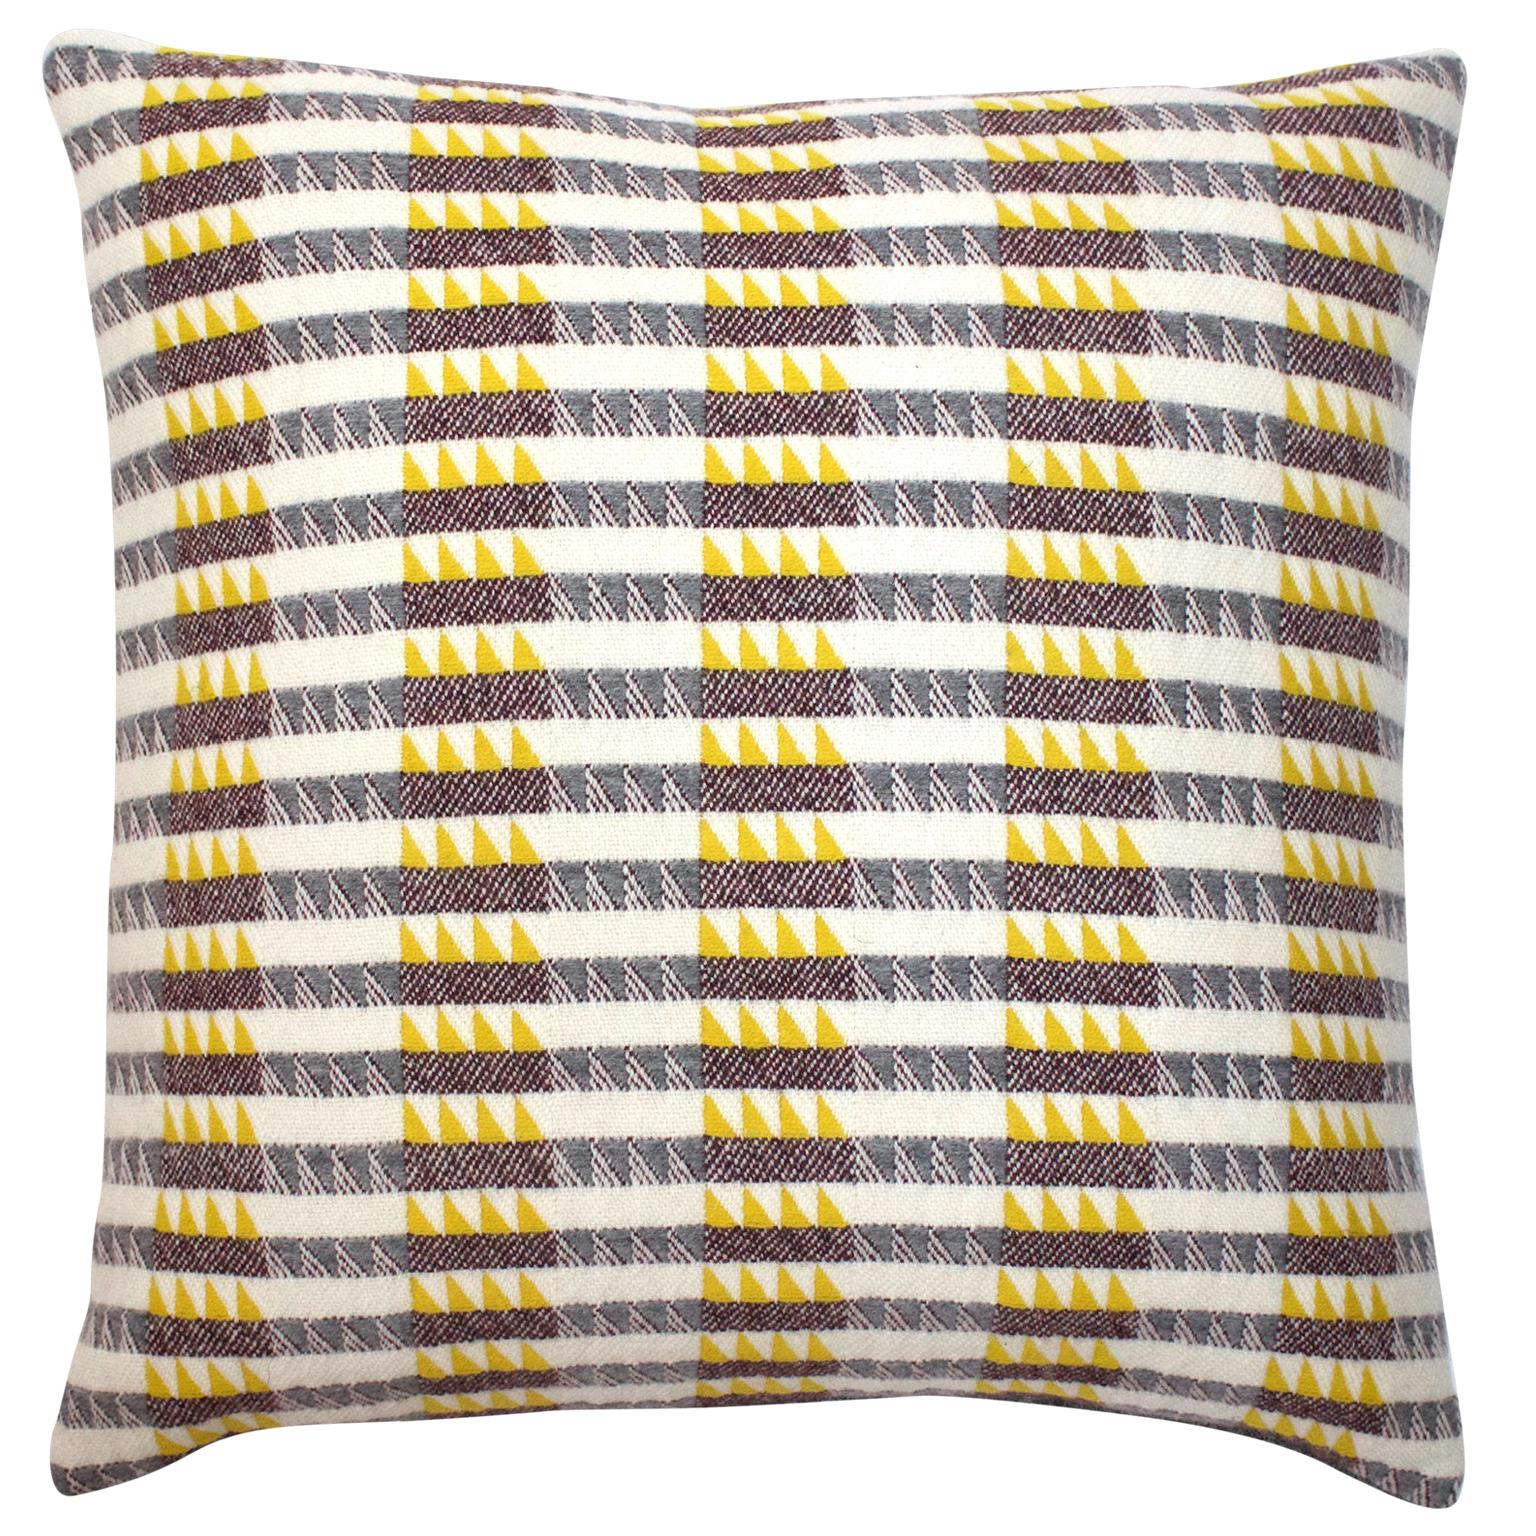 Handwoven 'Ixelles' Geometric Merino Wool Cushion Pillow, Piccalilli /Greys